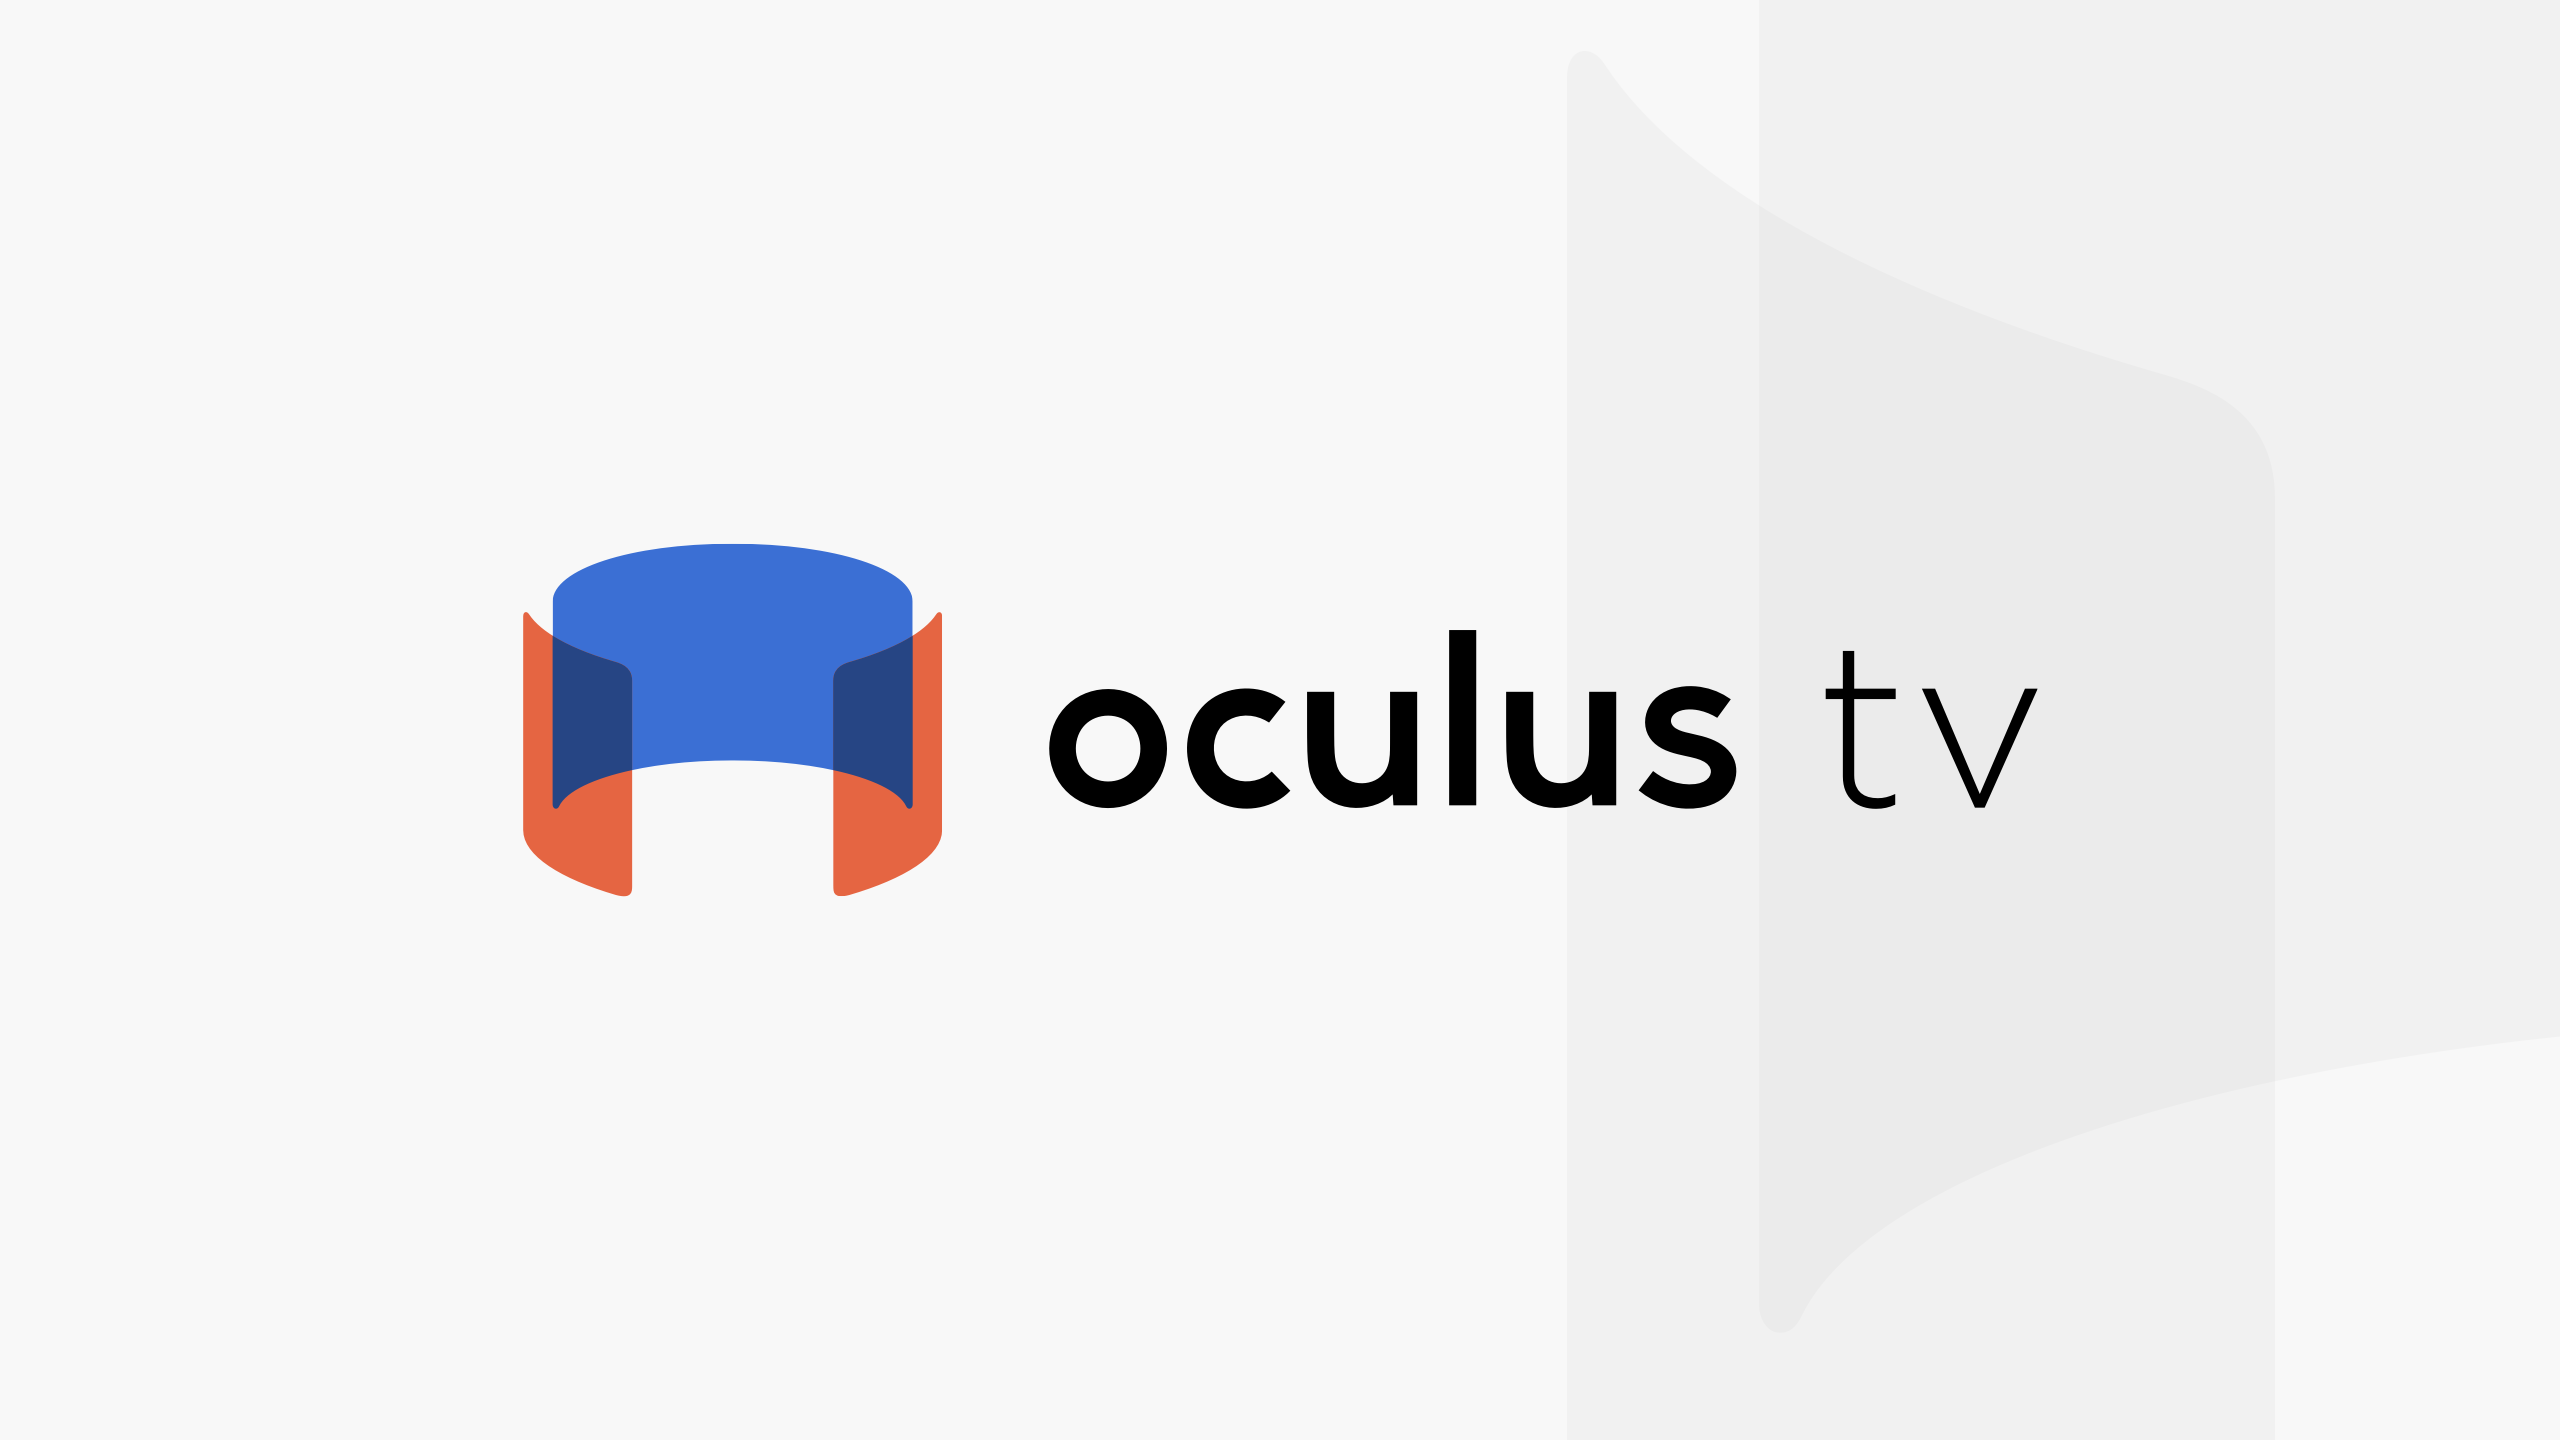 Facebook Launches Oculus TV, Makes It Available On Oculus Go